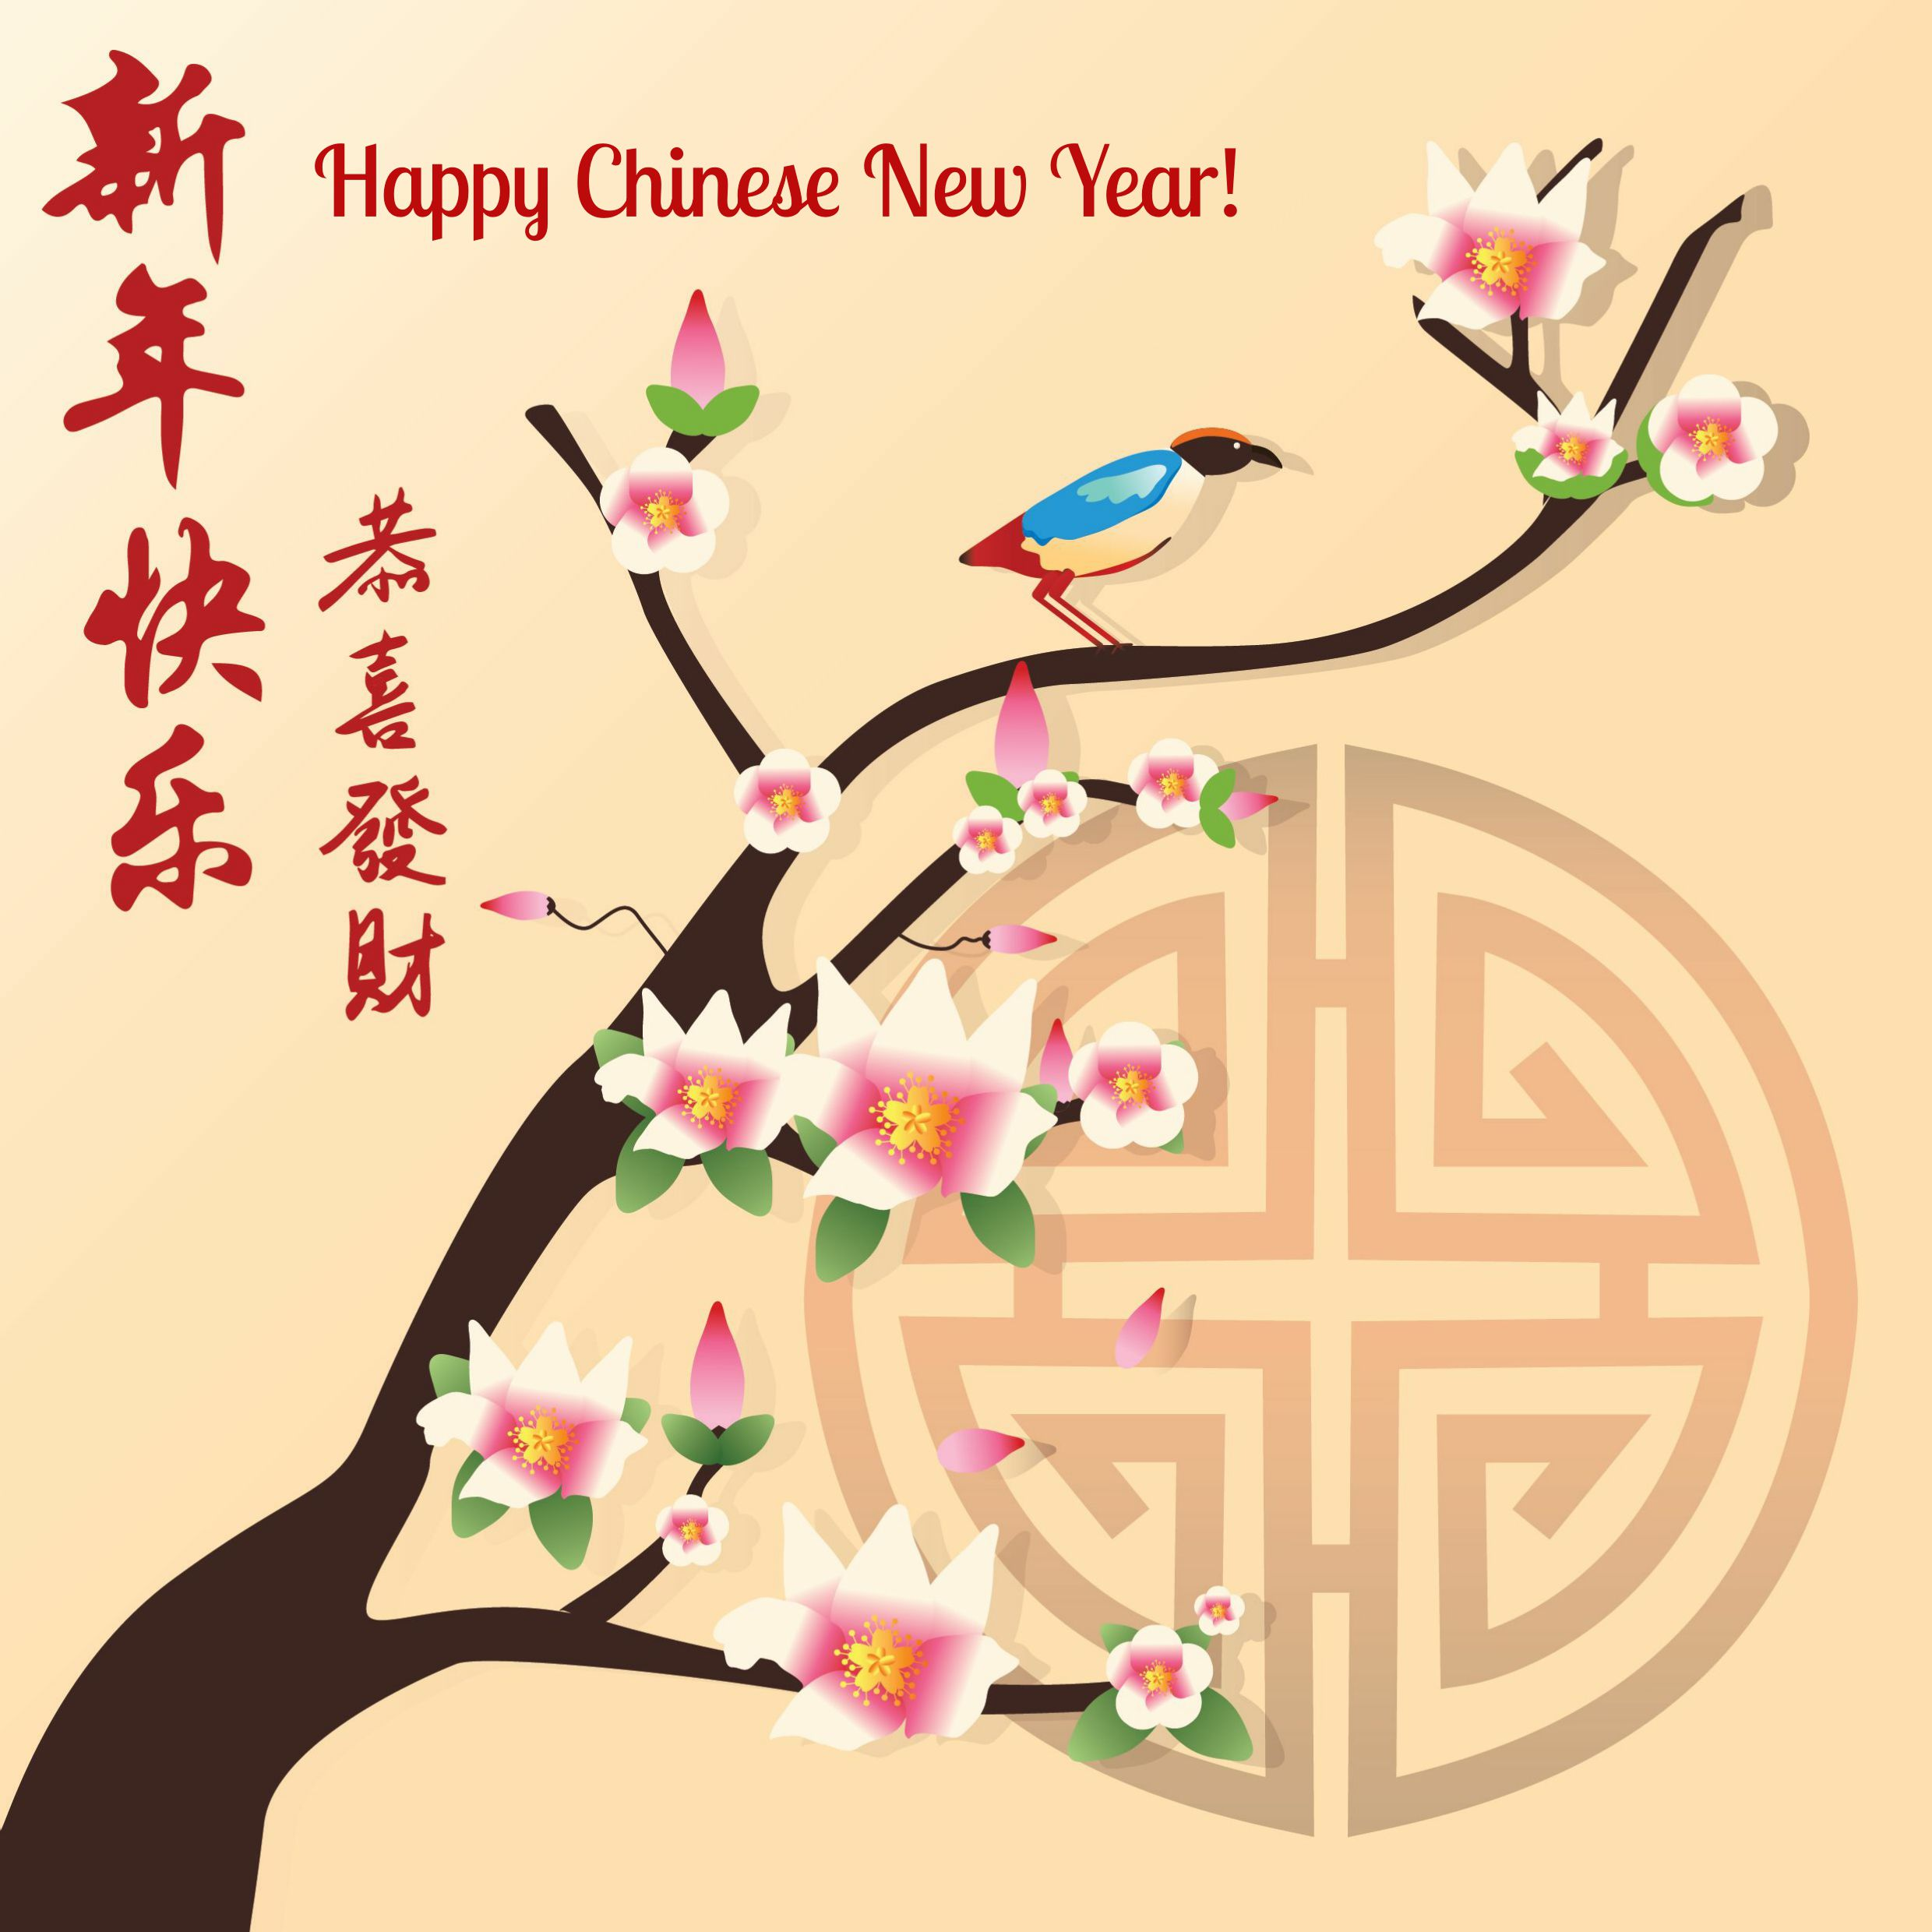 22 Favorite Chinese New Year's E-Card Sites 2017